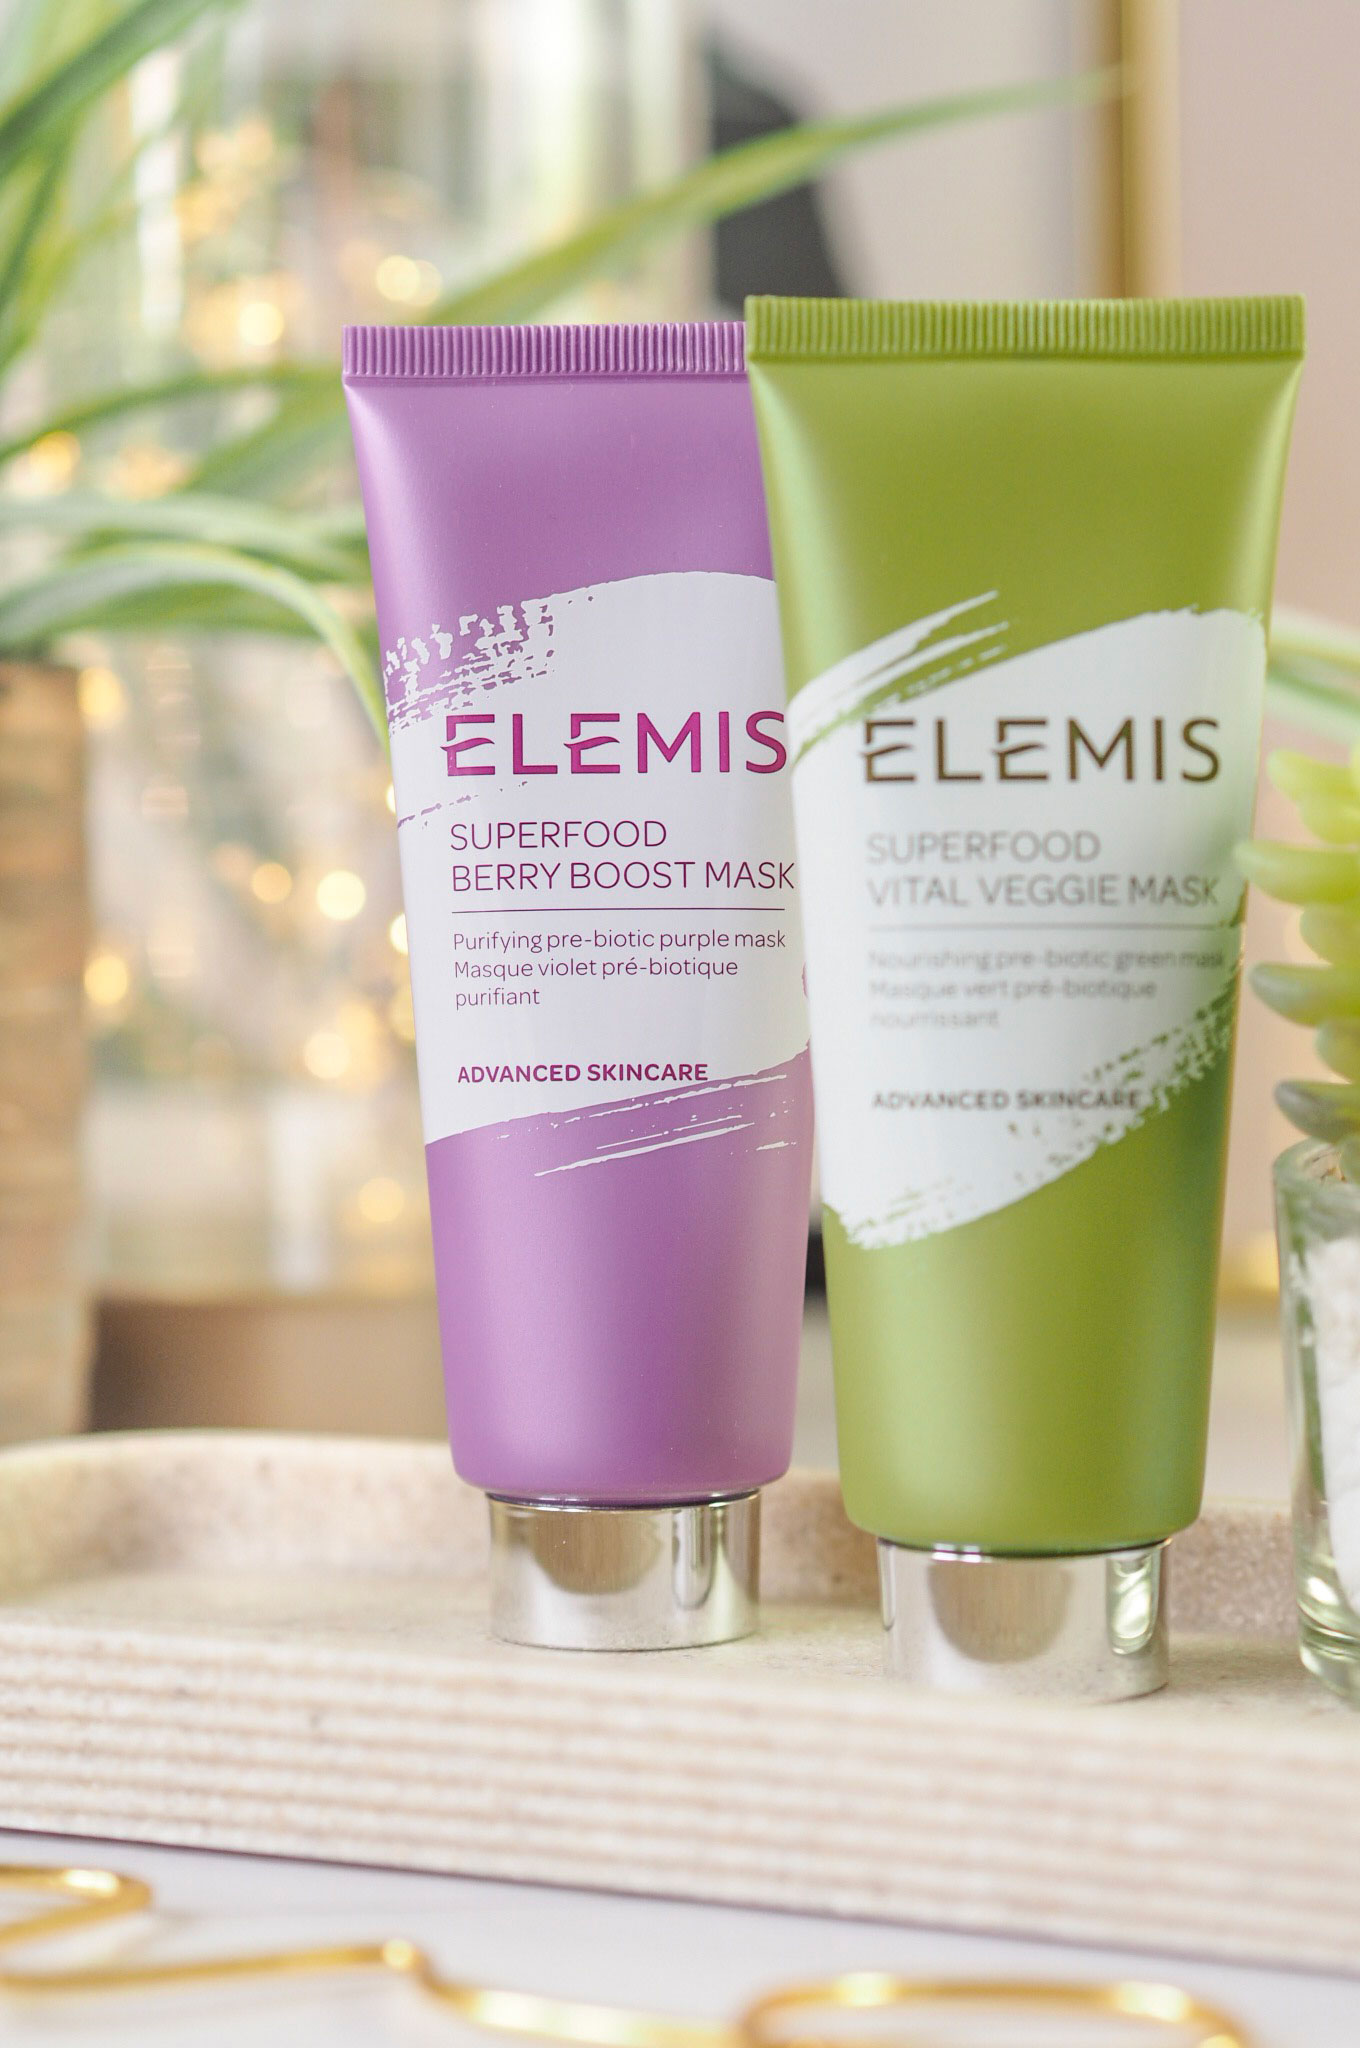 Elemis Superfood Berry Boost Mask Review